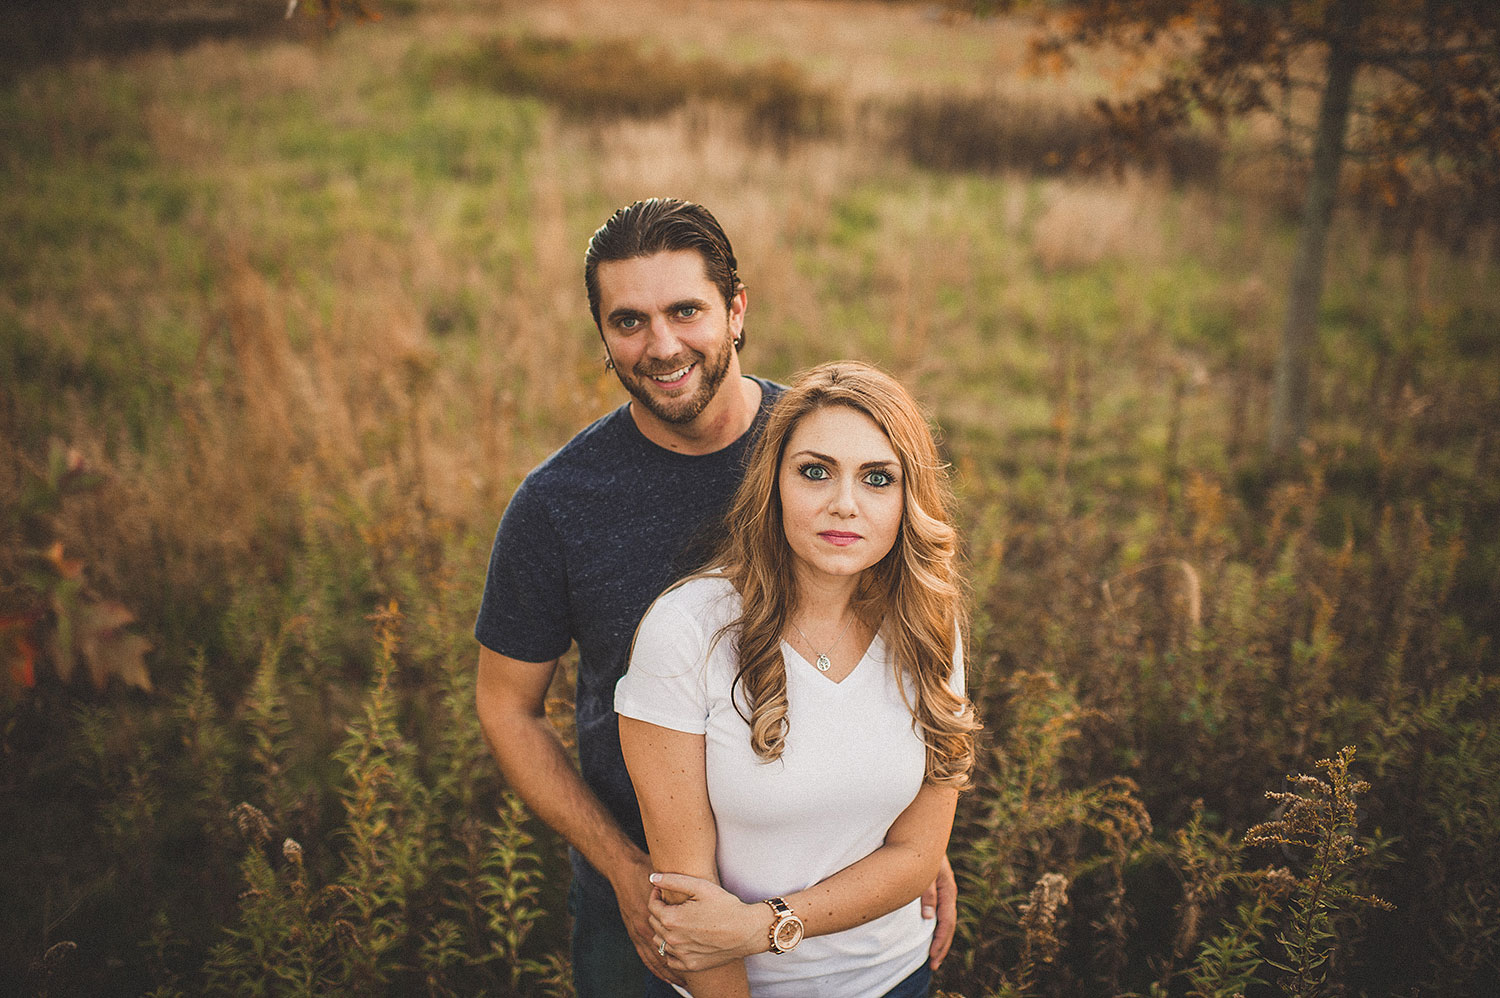 pat-robinson-photography-wilmington-engagement-session-17.jpg